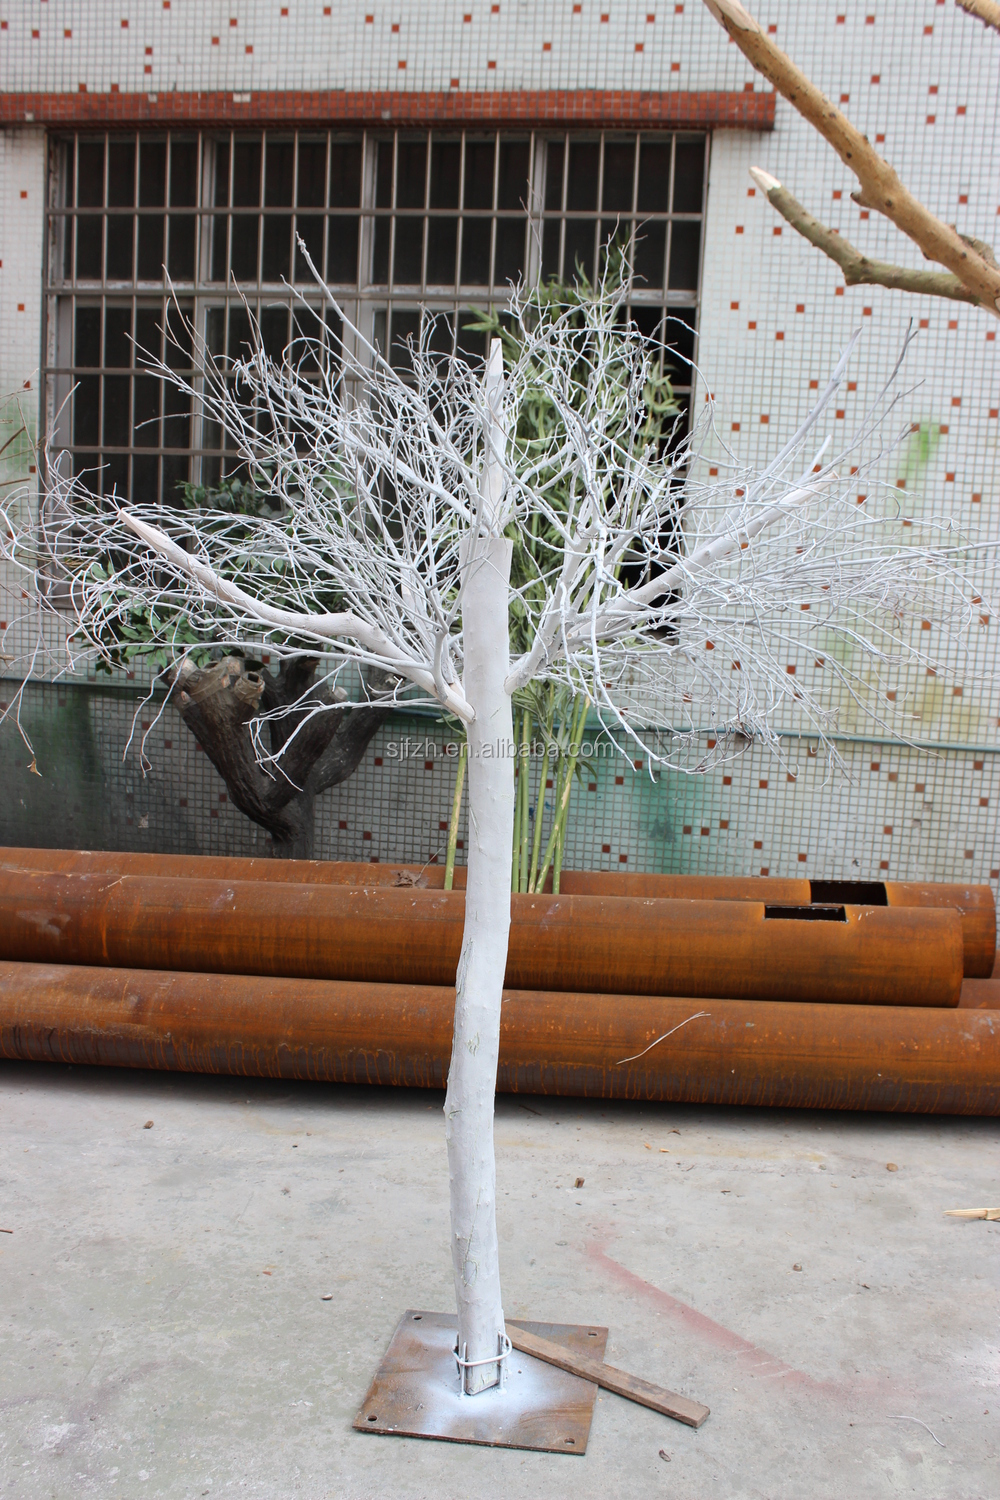 Artificial Tree Branches No Leaves for Decorative